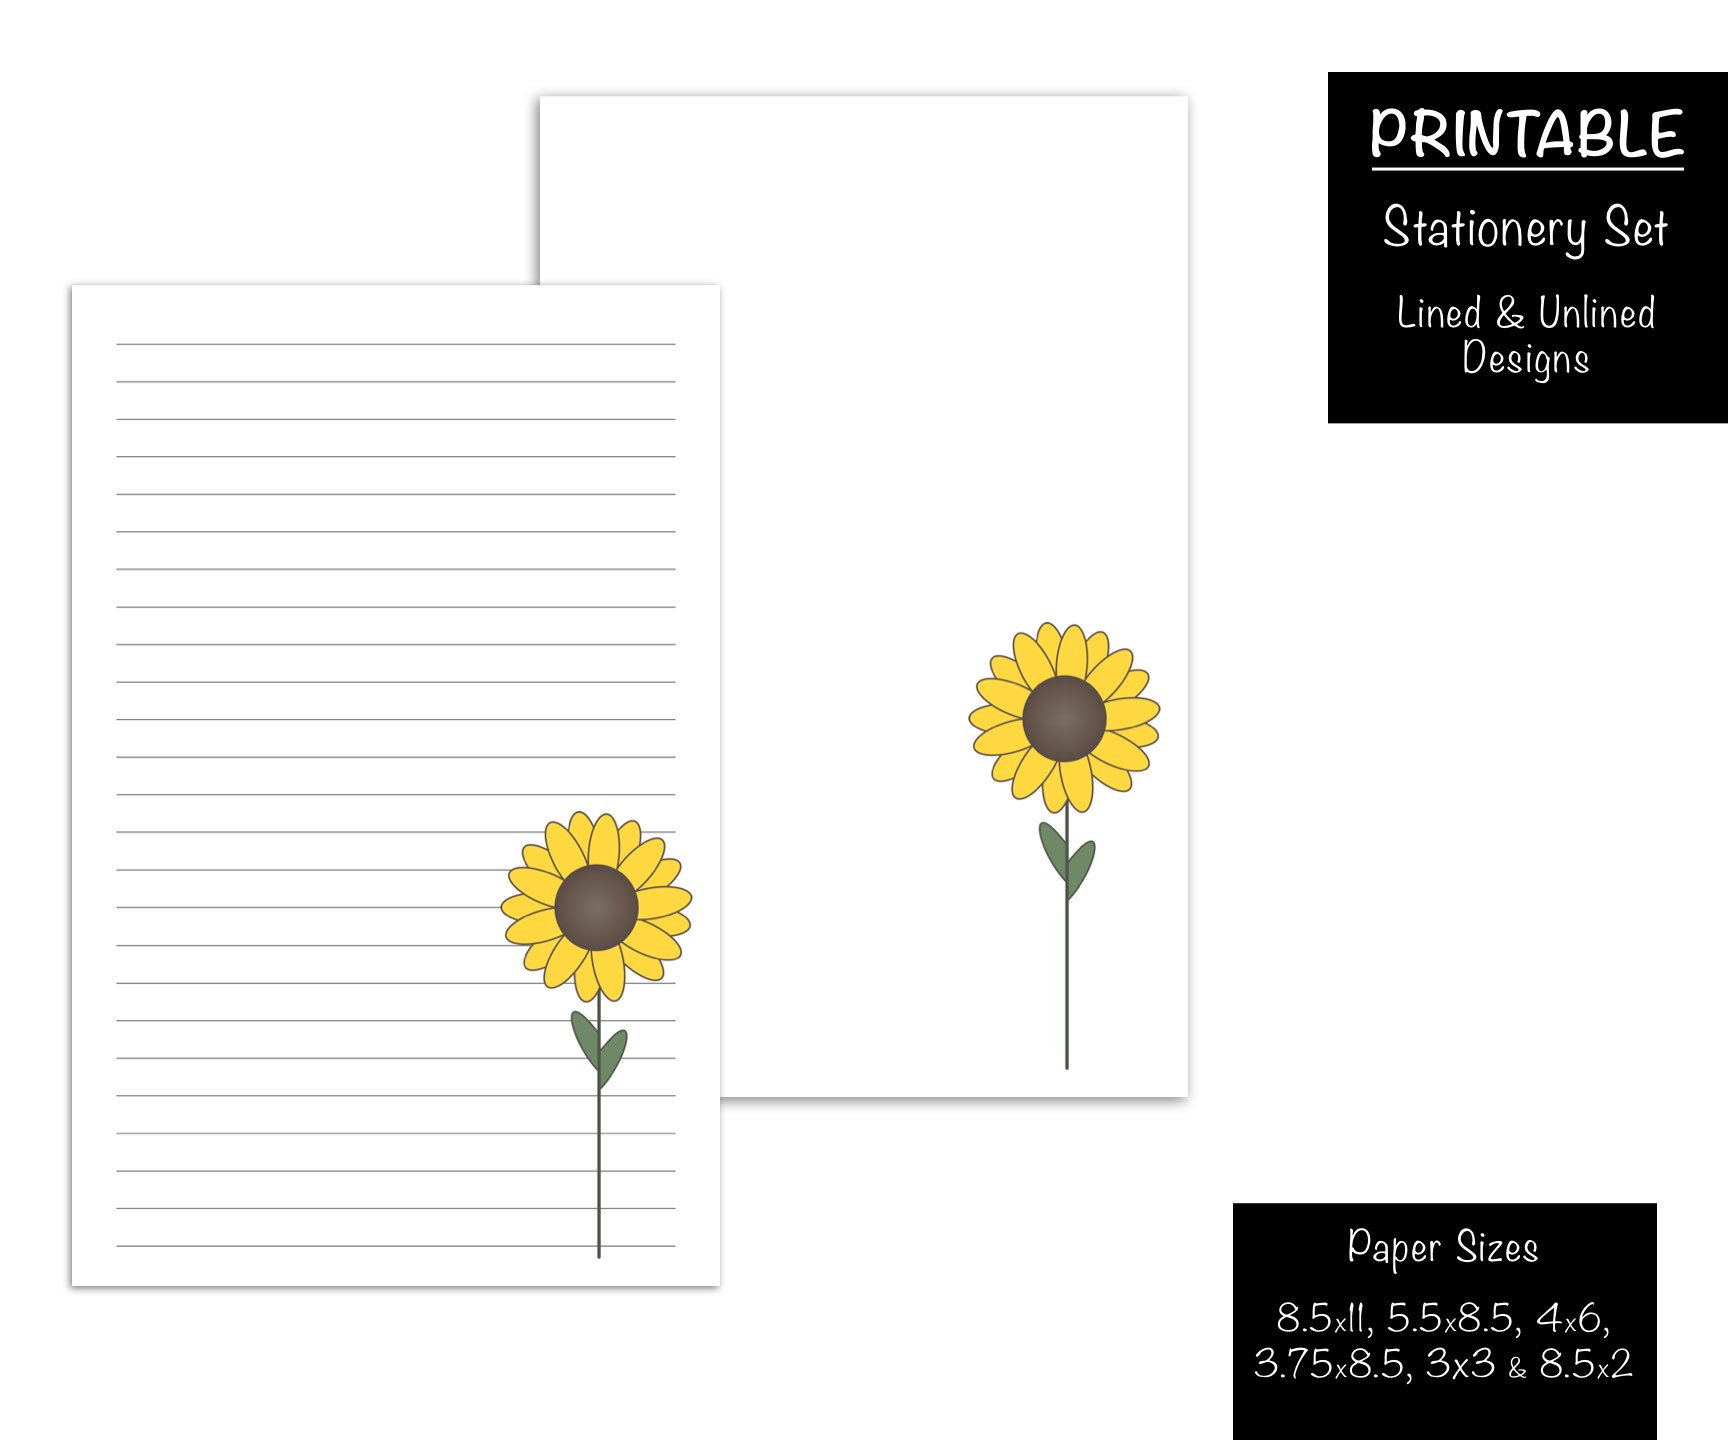 Sunflower Printable Stationery Writing Note Paper Autumn | Etsy - Free Printable Sunflower Stationery